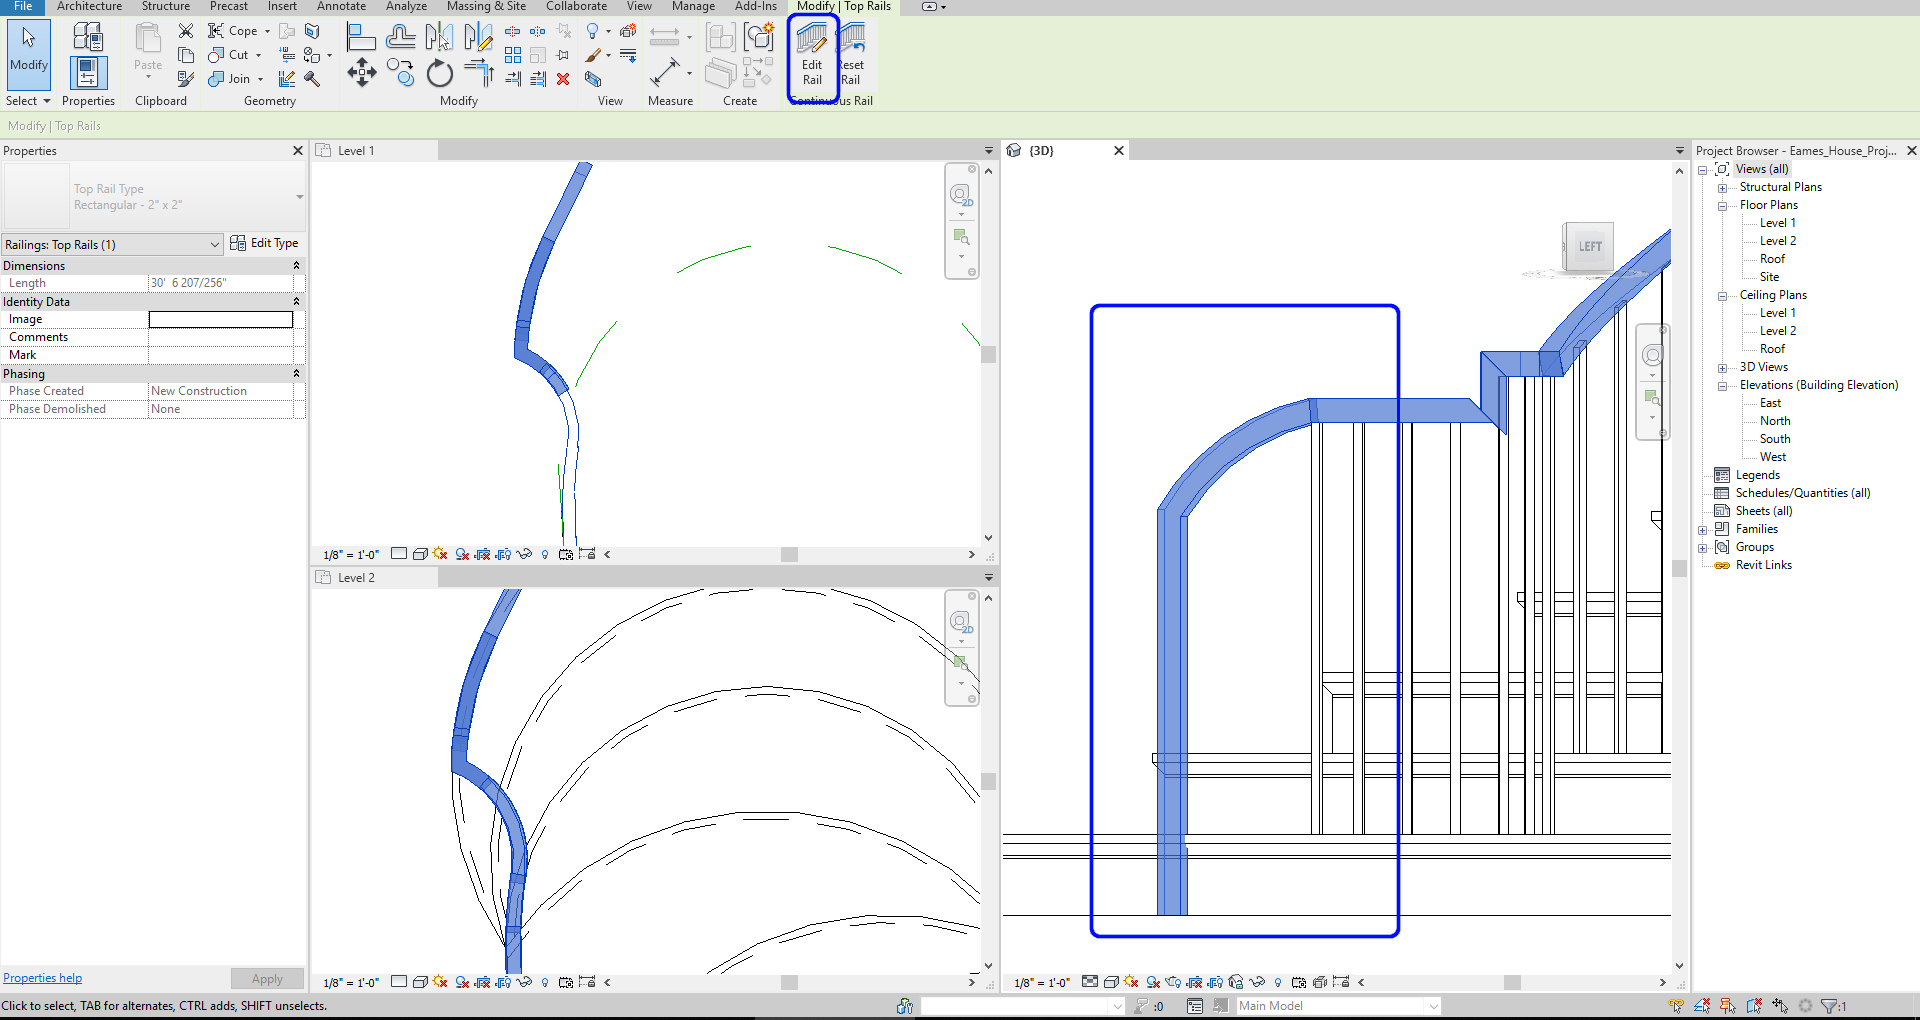 It shows the resulting image after edit the hand railing.